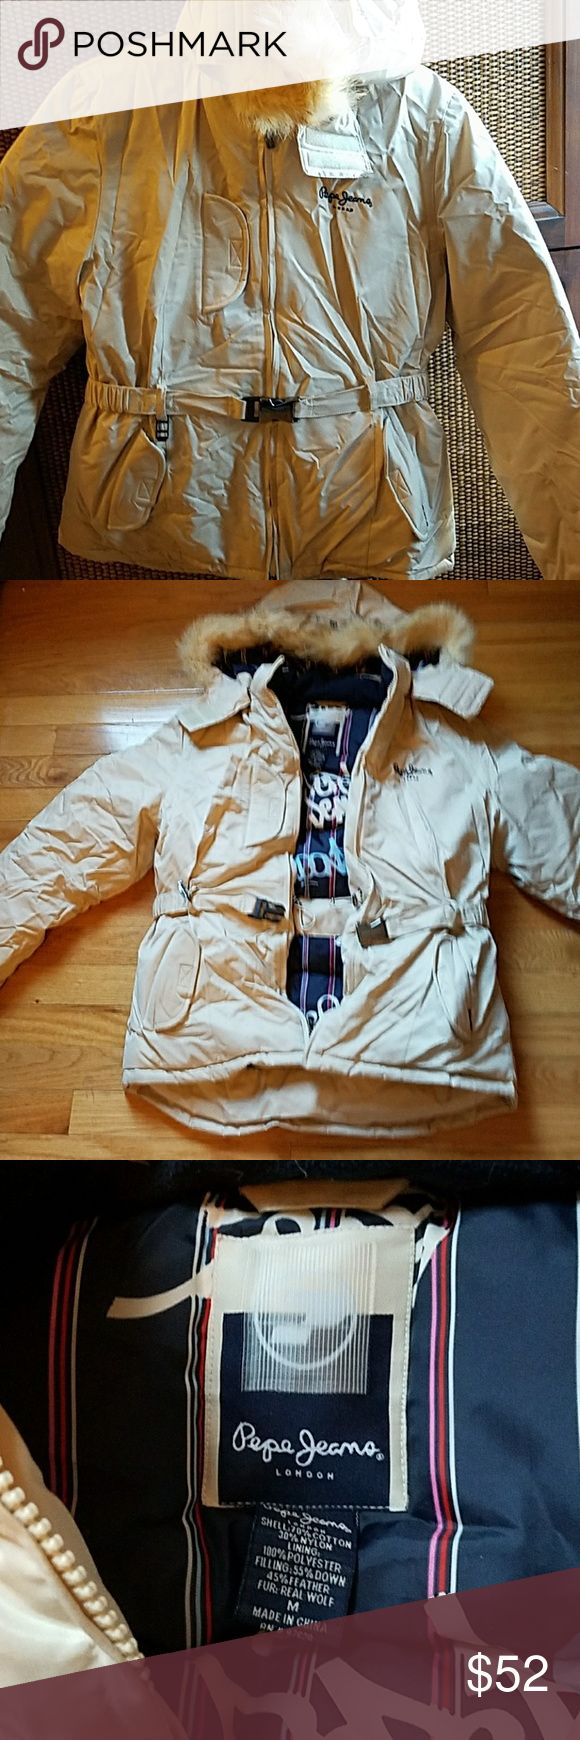 Pepe jeans down jacket Perfect condition. Never worn! Women's size Medium. Very thick down filled jacket. Really pretty beige with fur hood. Make me an offer! Pepe Jeans Jackets & Coats Puffers